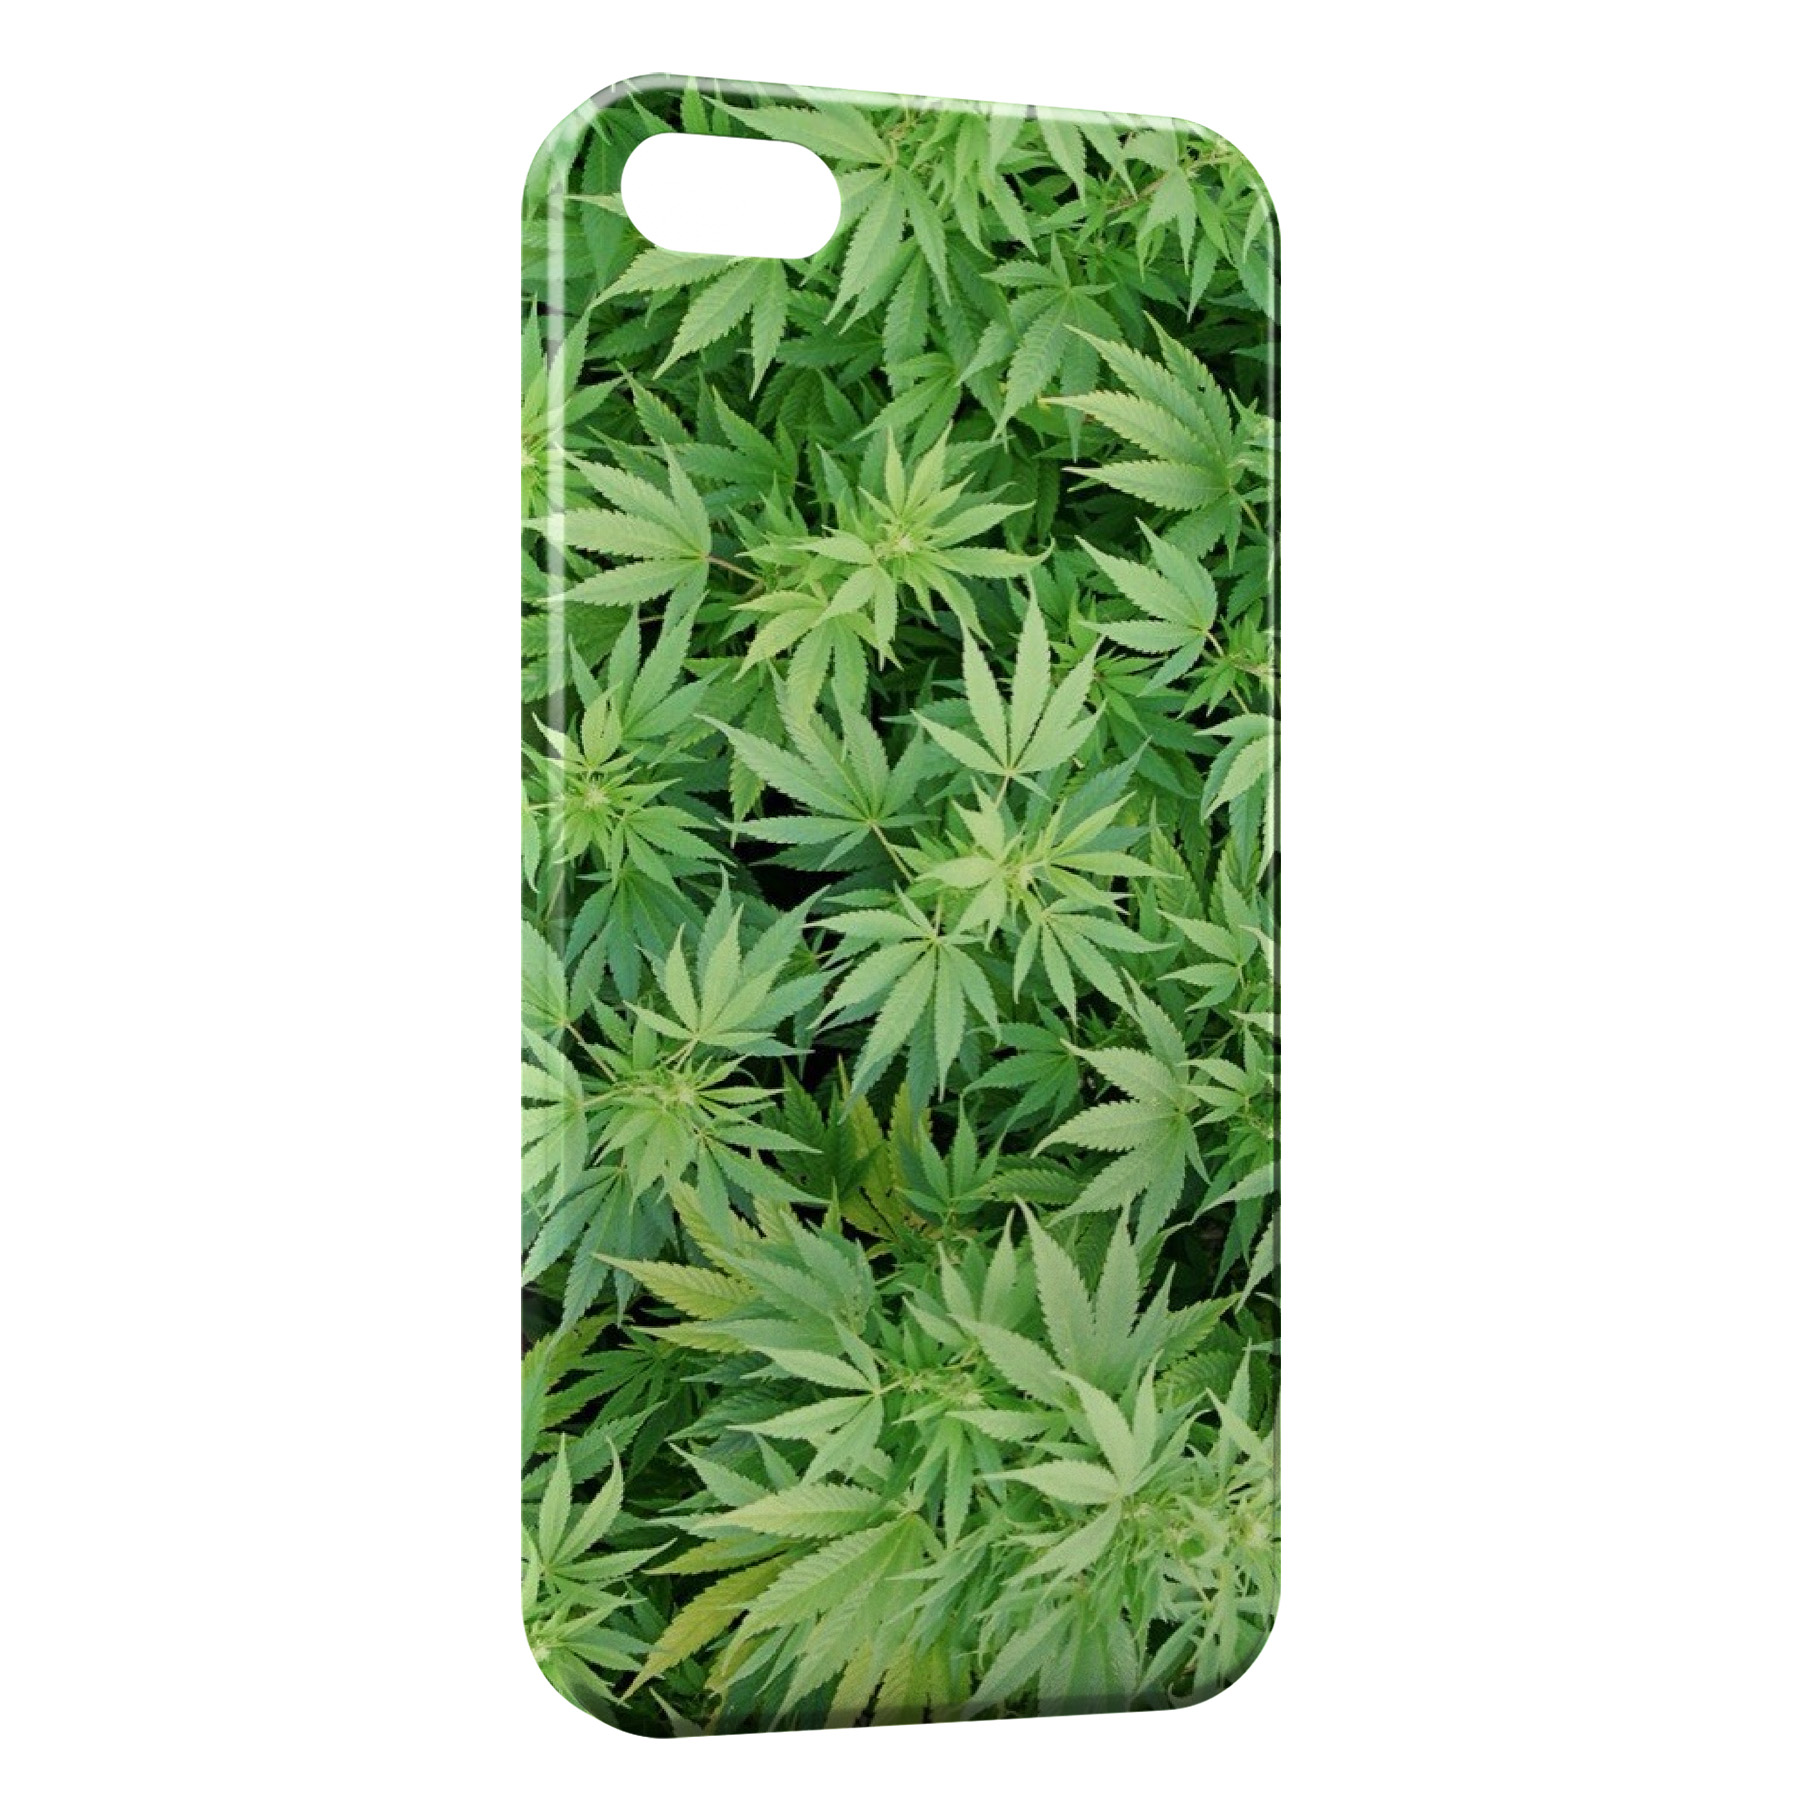 Coque iPhone 4 4S Cannabis Weed